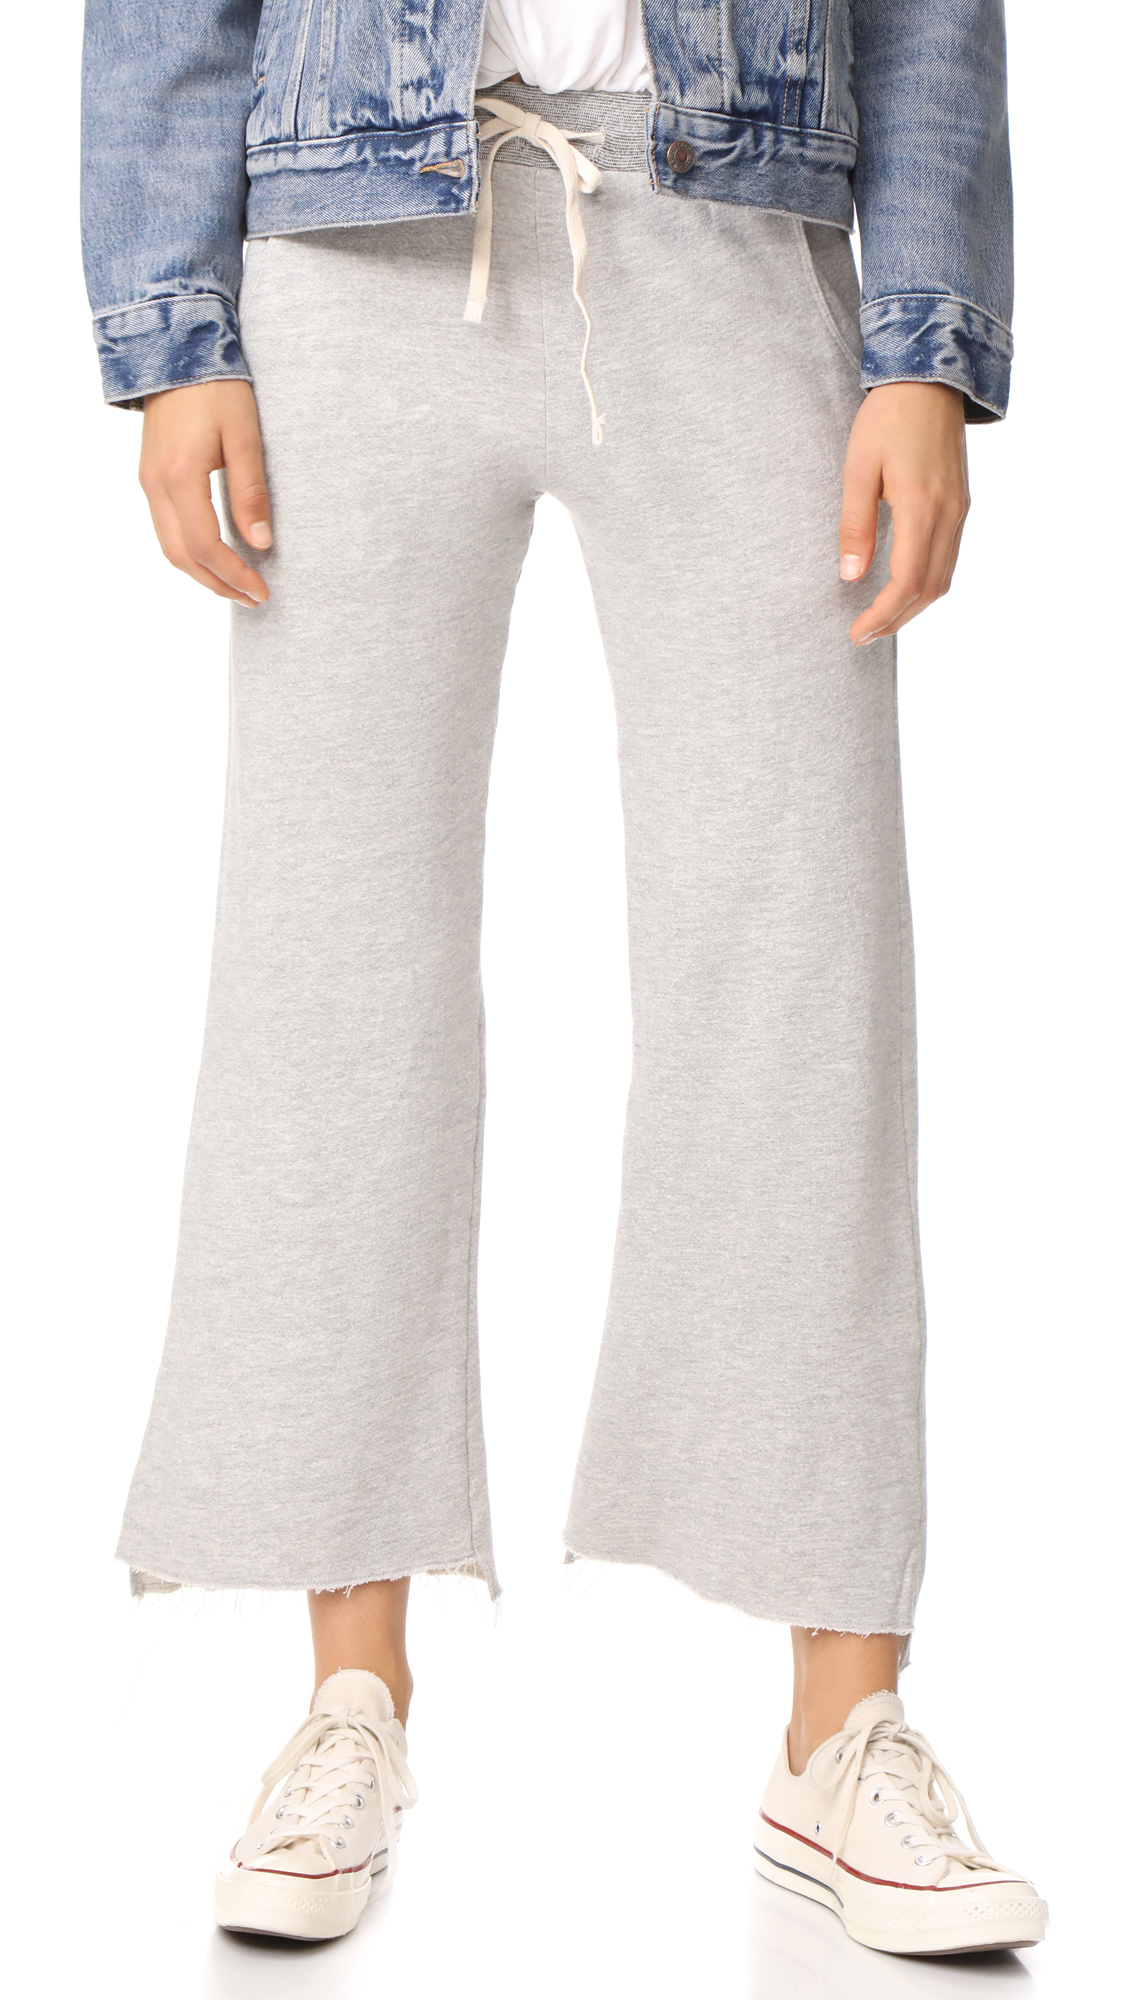 SUNDRY Flare Sweatpants